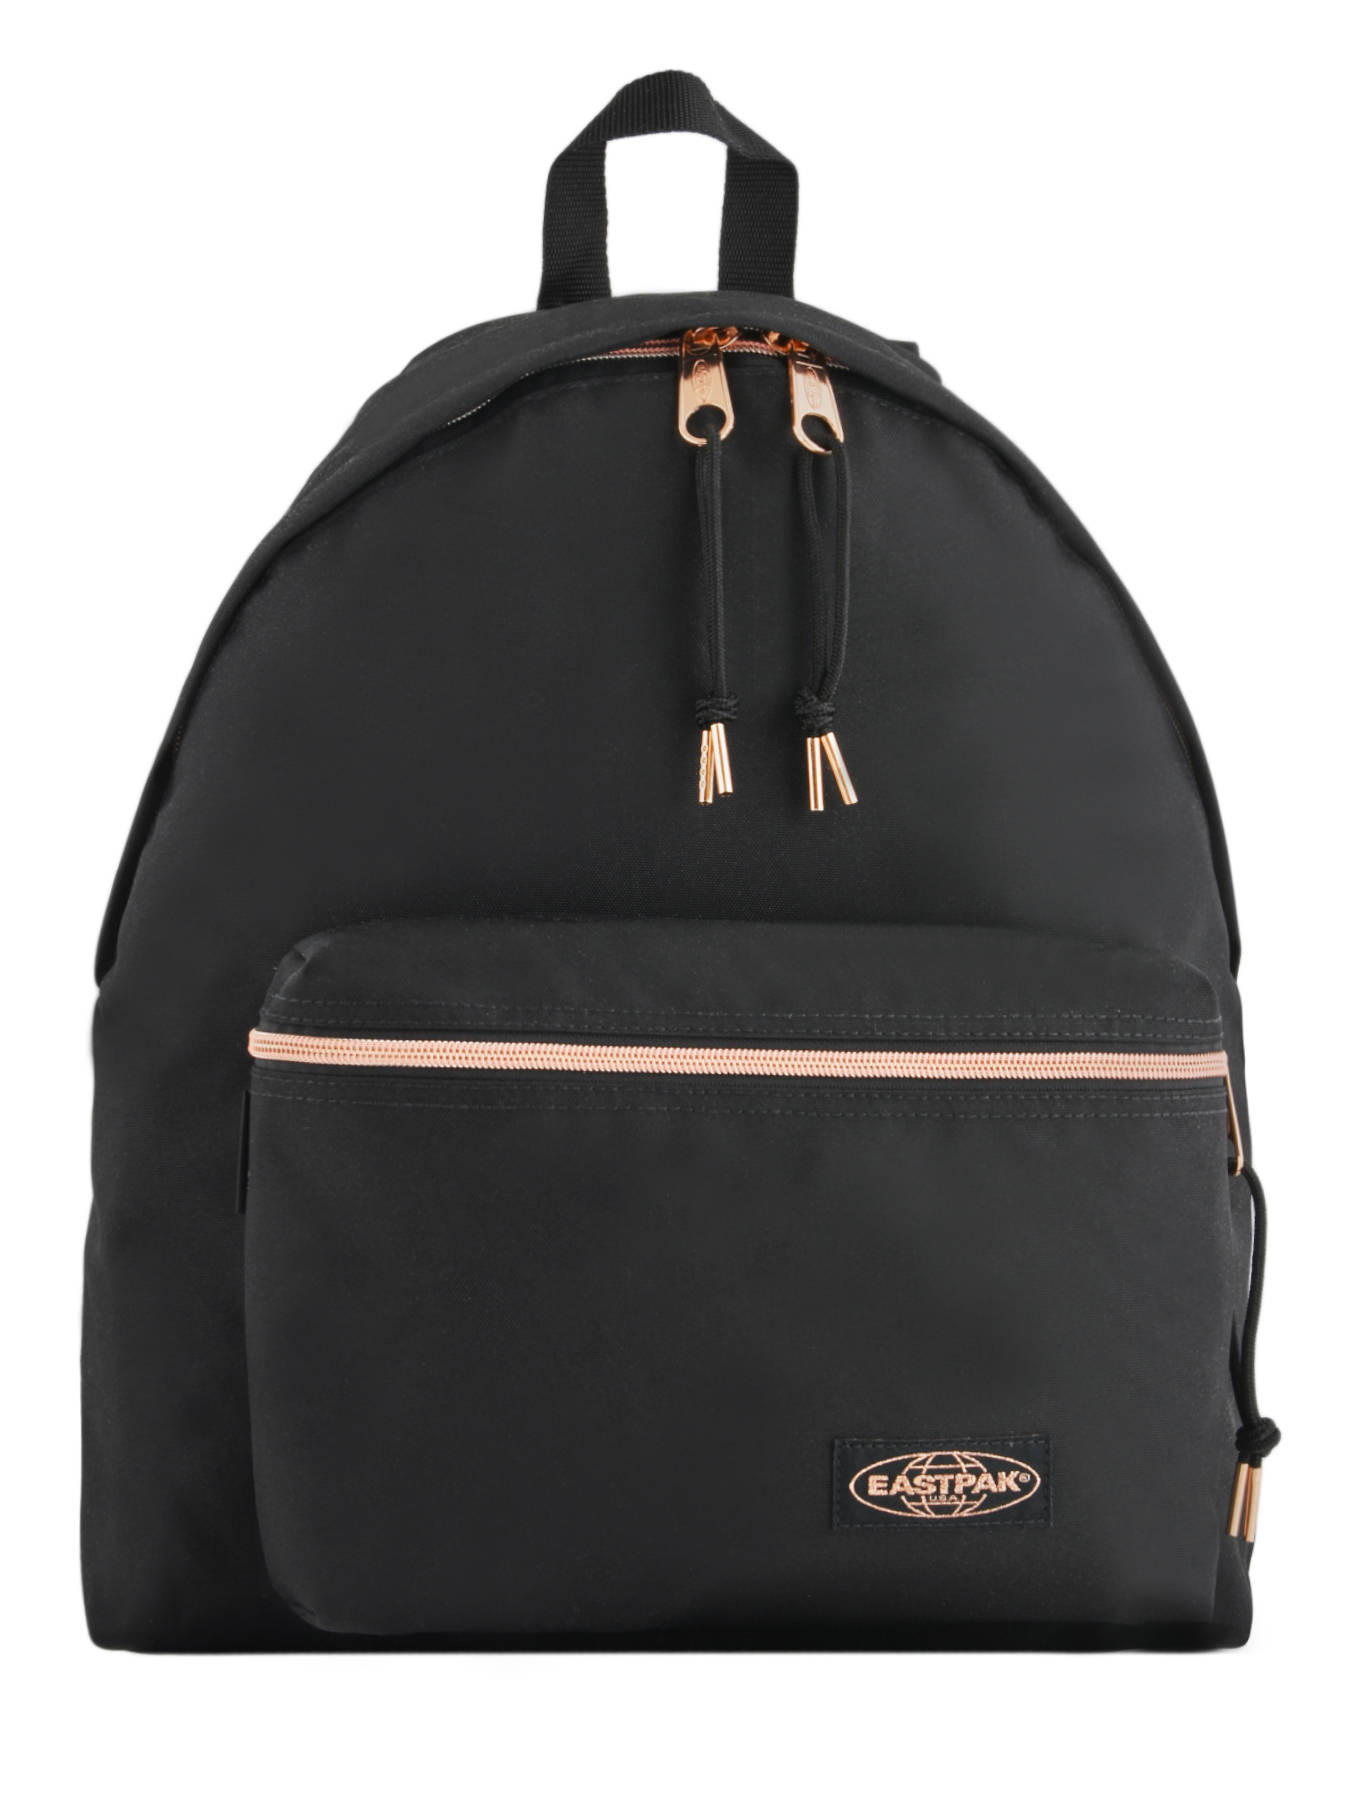 À gold Sac Dos be Sur Eastpak Edisac Padded Goldup ZwwqxzndC